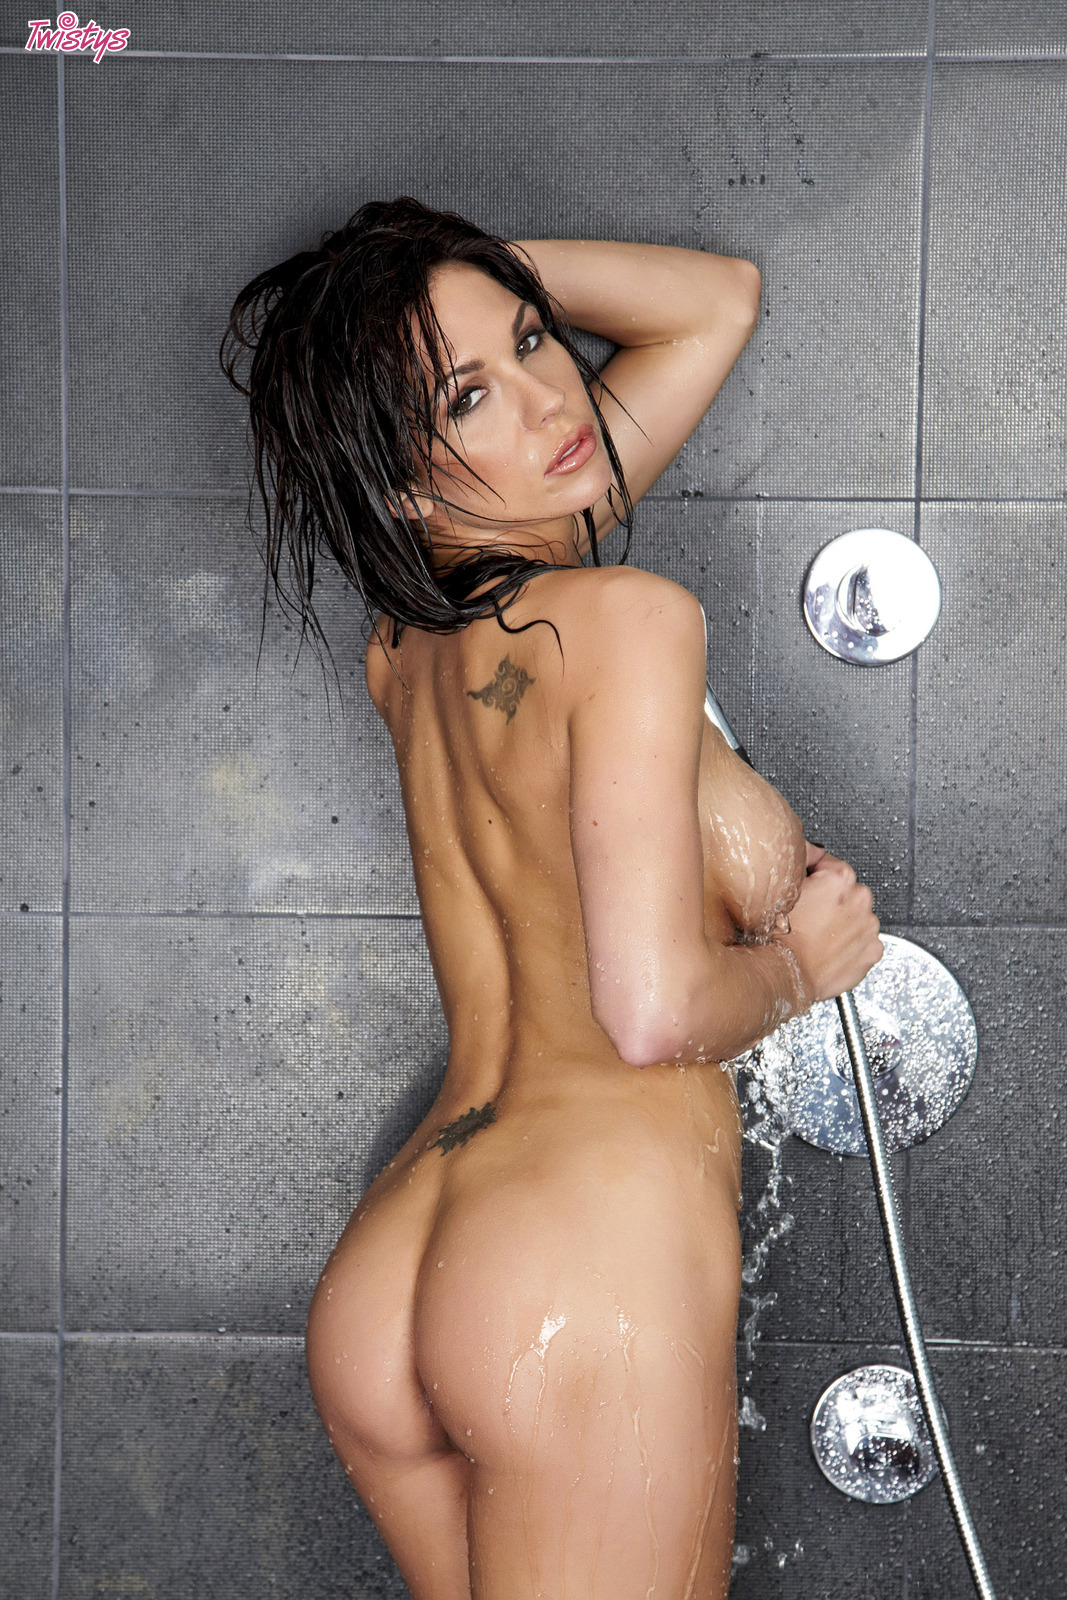 Seems me, hot babes in the shower nude think, that